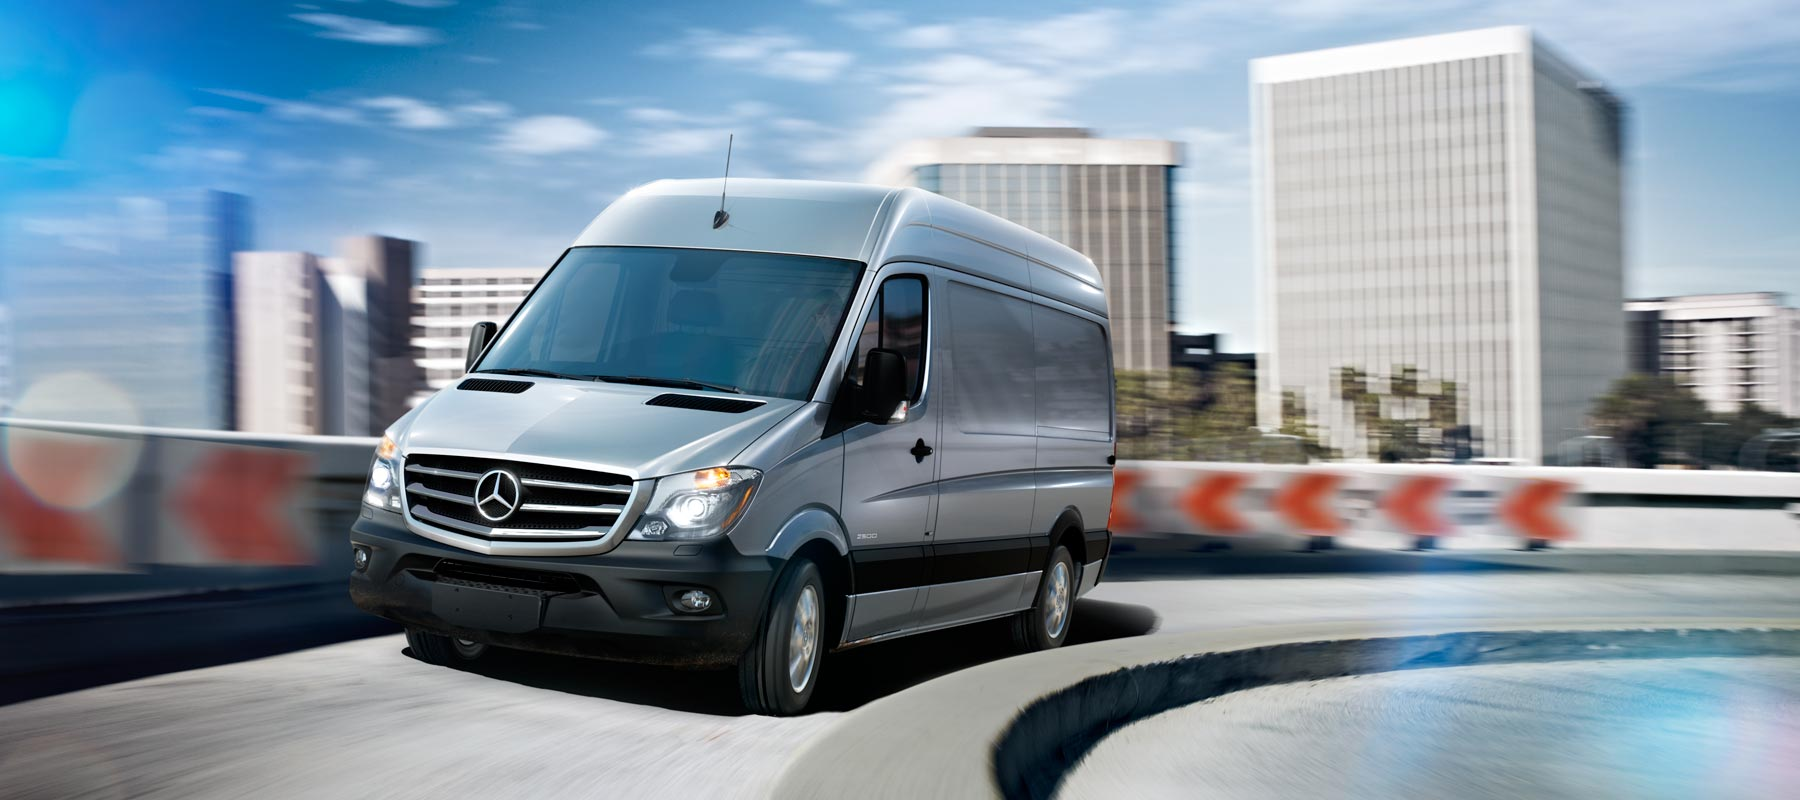 2016 mercedes benz sprinter cargo van riverside mercedes for Minnesota mercedes benz dealers